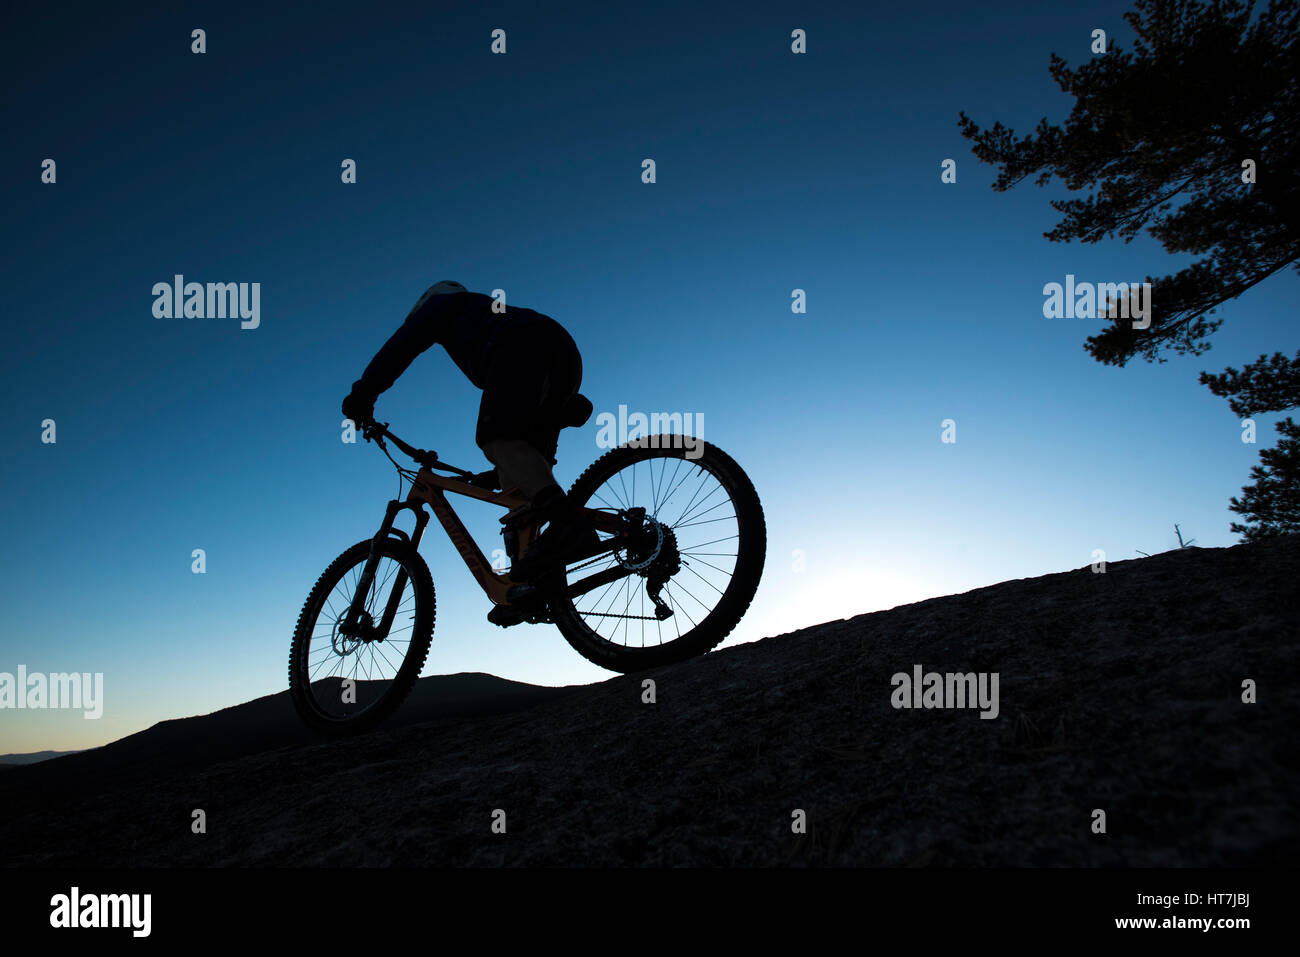 Alex Leich Mountain Biking On The Bare Granite Slabs Of Whitehorse Ledge In North Conway, New Hampshire - Stock Image